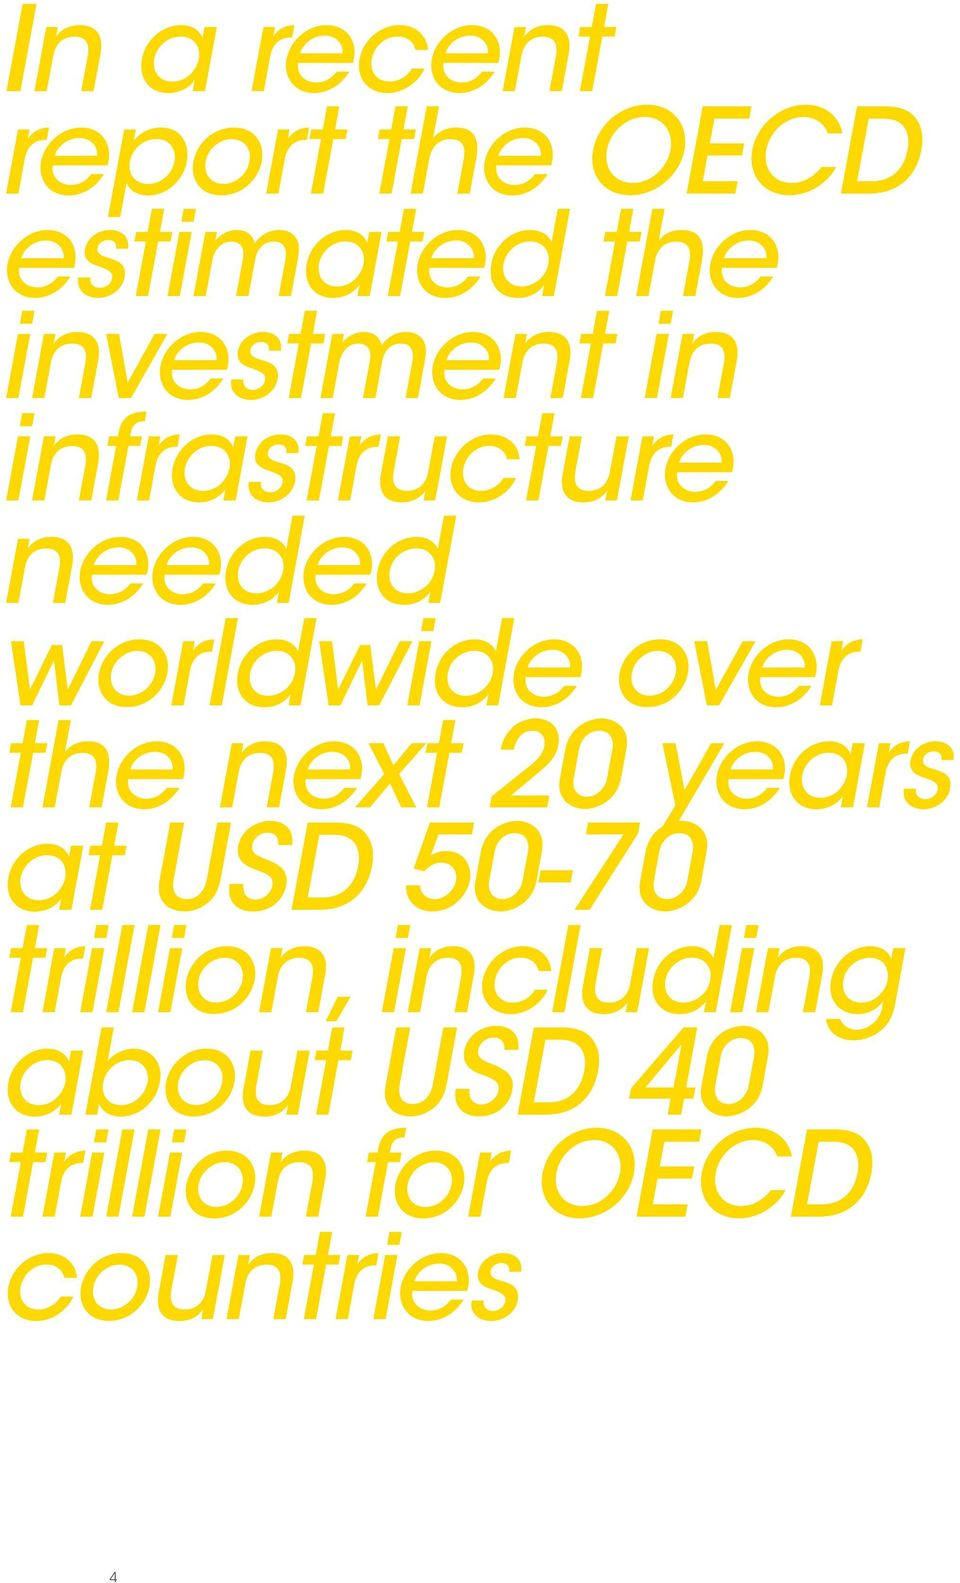 over the next 20 years at USD 50-70 trillion,